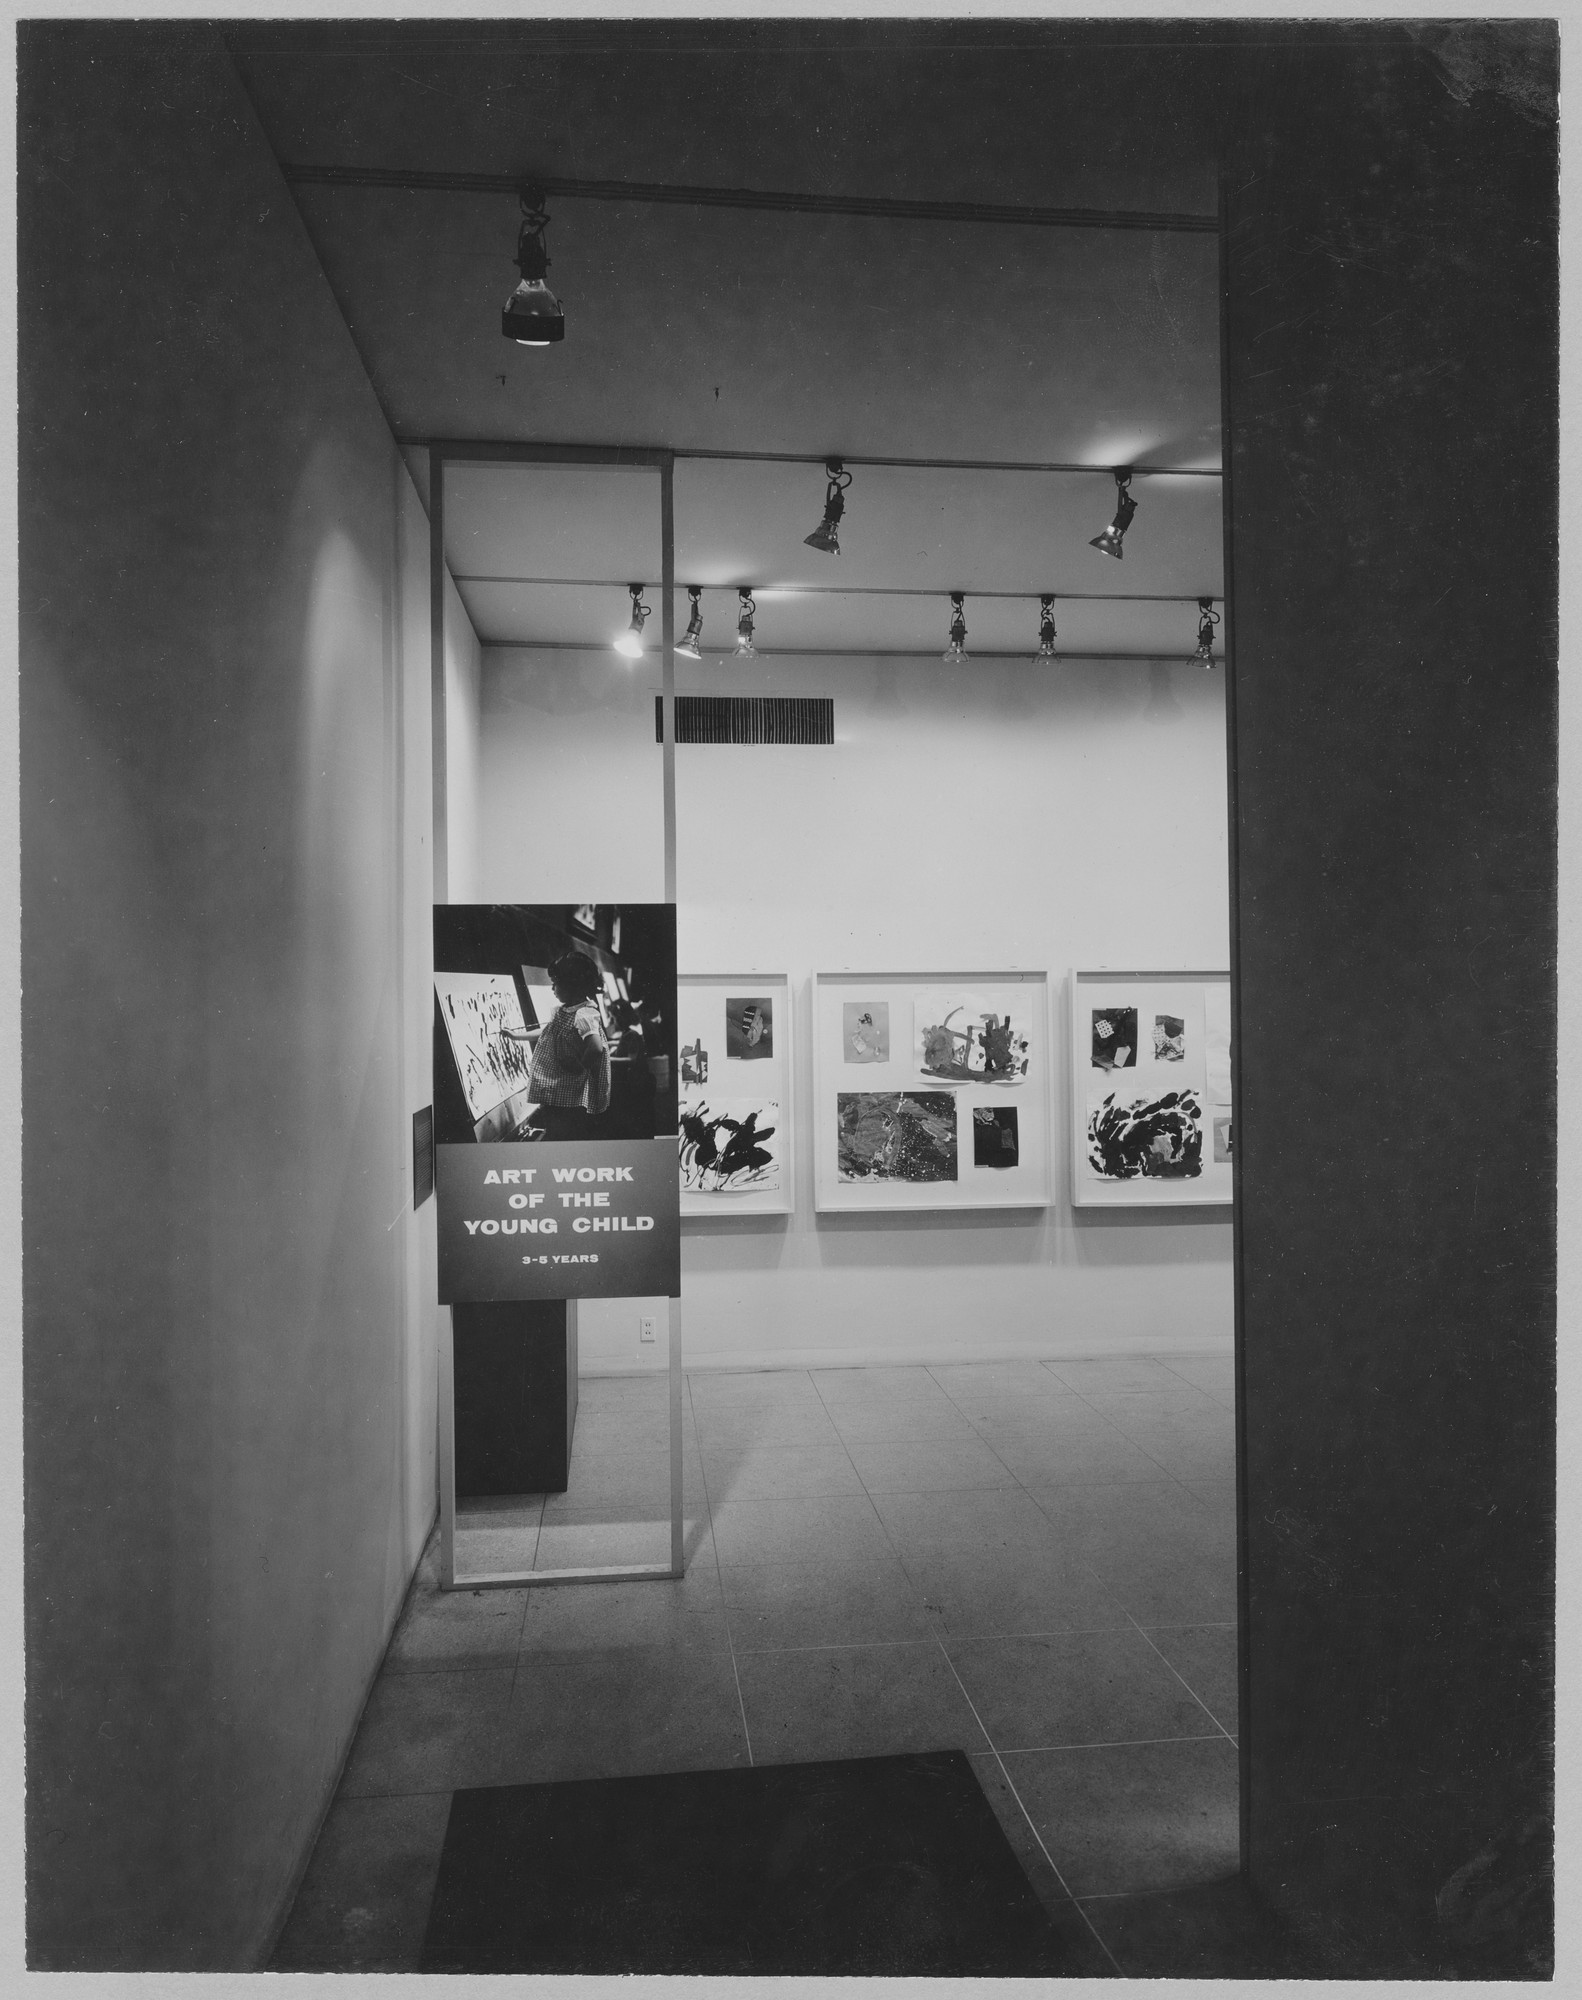 "Installation view of the exhibition, ""Art of the Young Child."" December 6, 1955–January 15, 1956. Photographic Archive. The Museum of Modern Art Archives, New York. IN593.1. Photograph by Soichi Sunami."